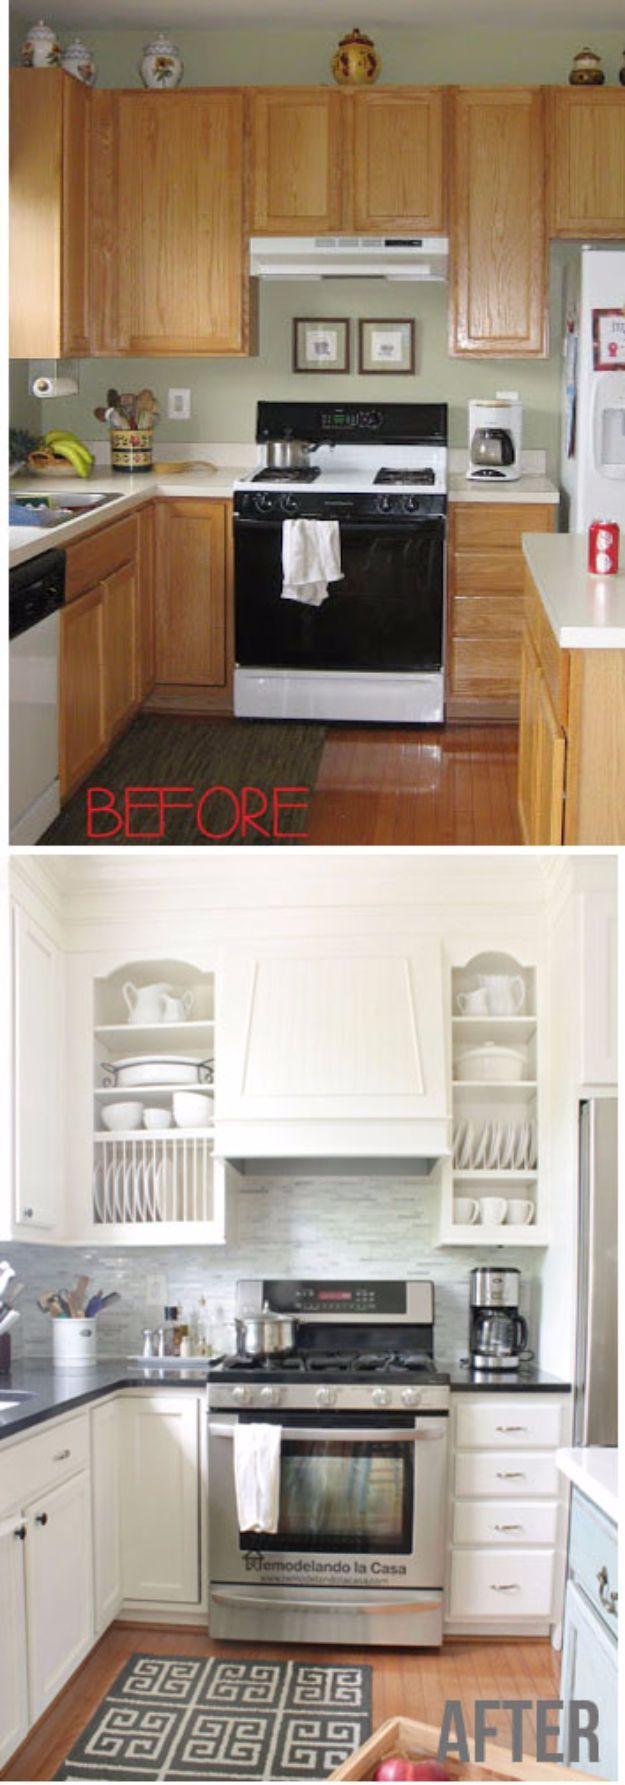 kitchen cabinet makeover ideas best 25 cabinet door makeover ideas on 19115